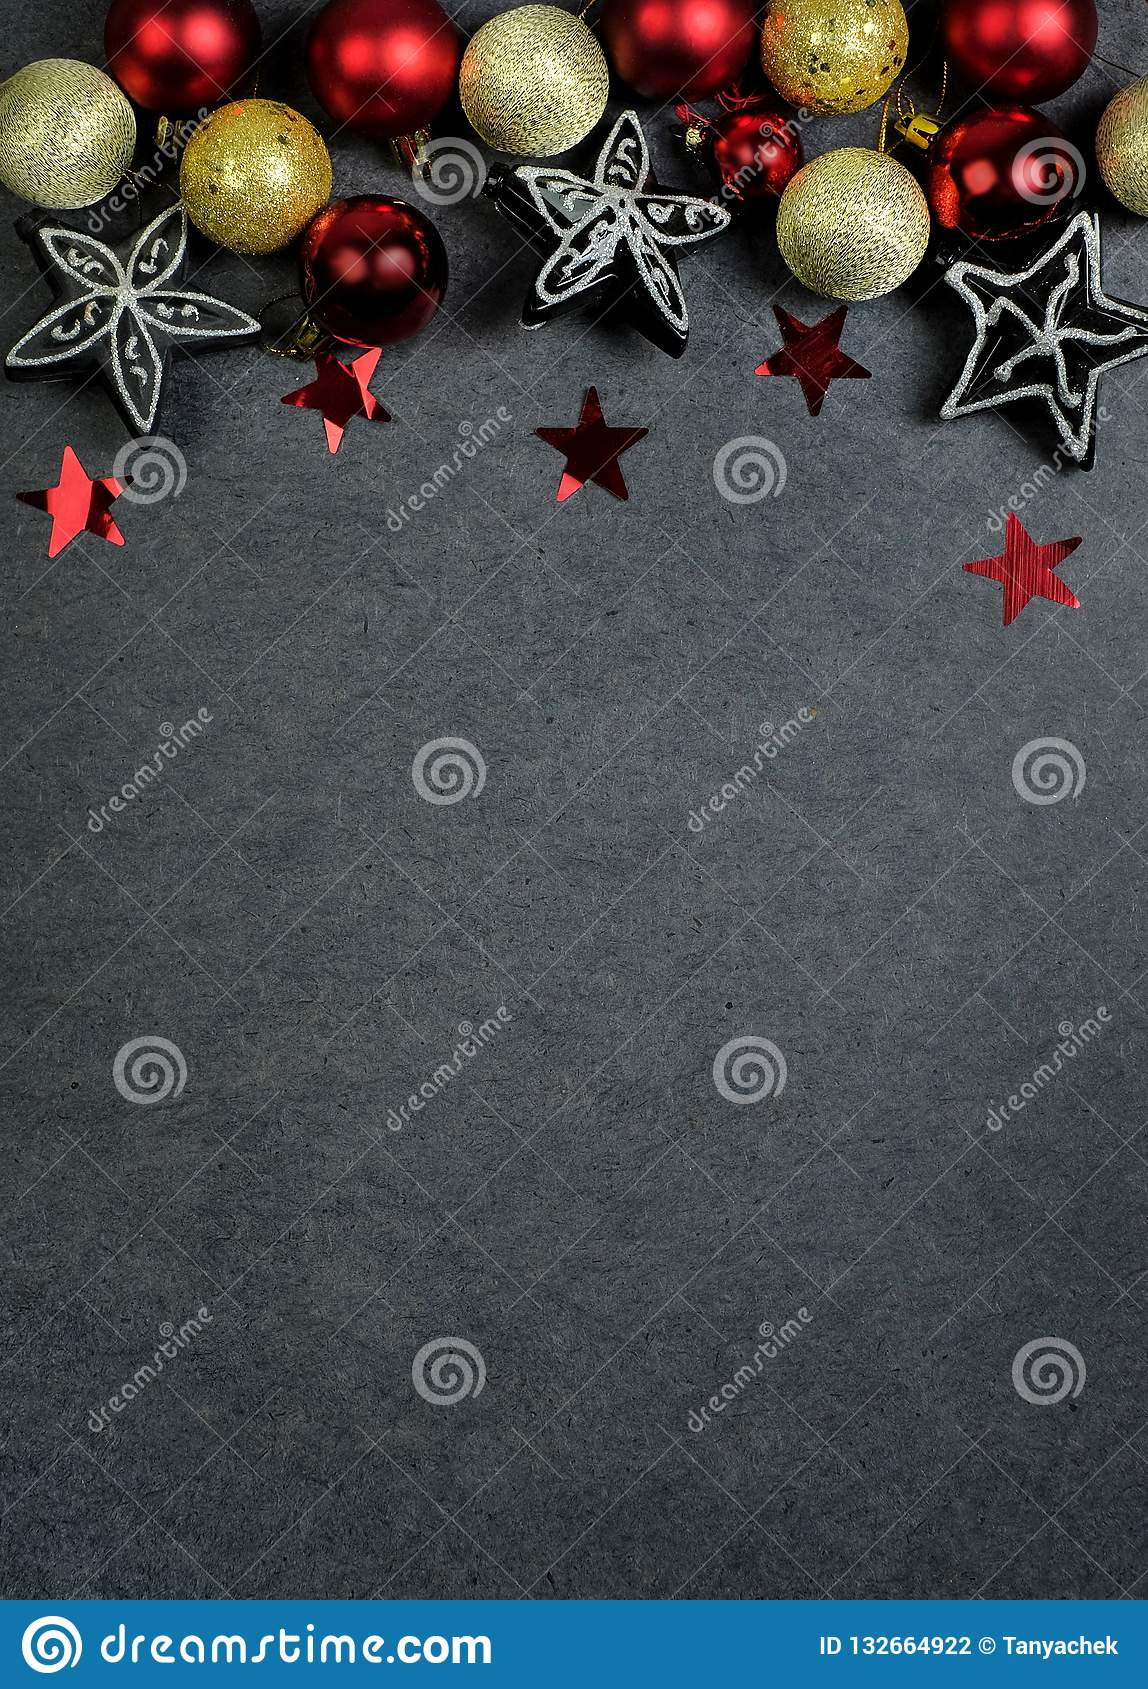 501e4bcf4225 Christmas decoration, red balls and black silver stars on the white  background. Flat lay. Copy space. Top view. More similar stock images